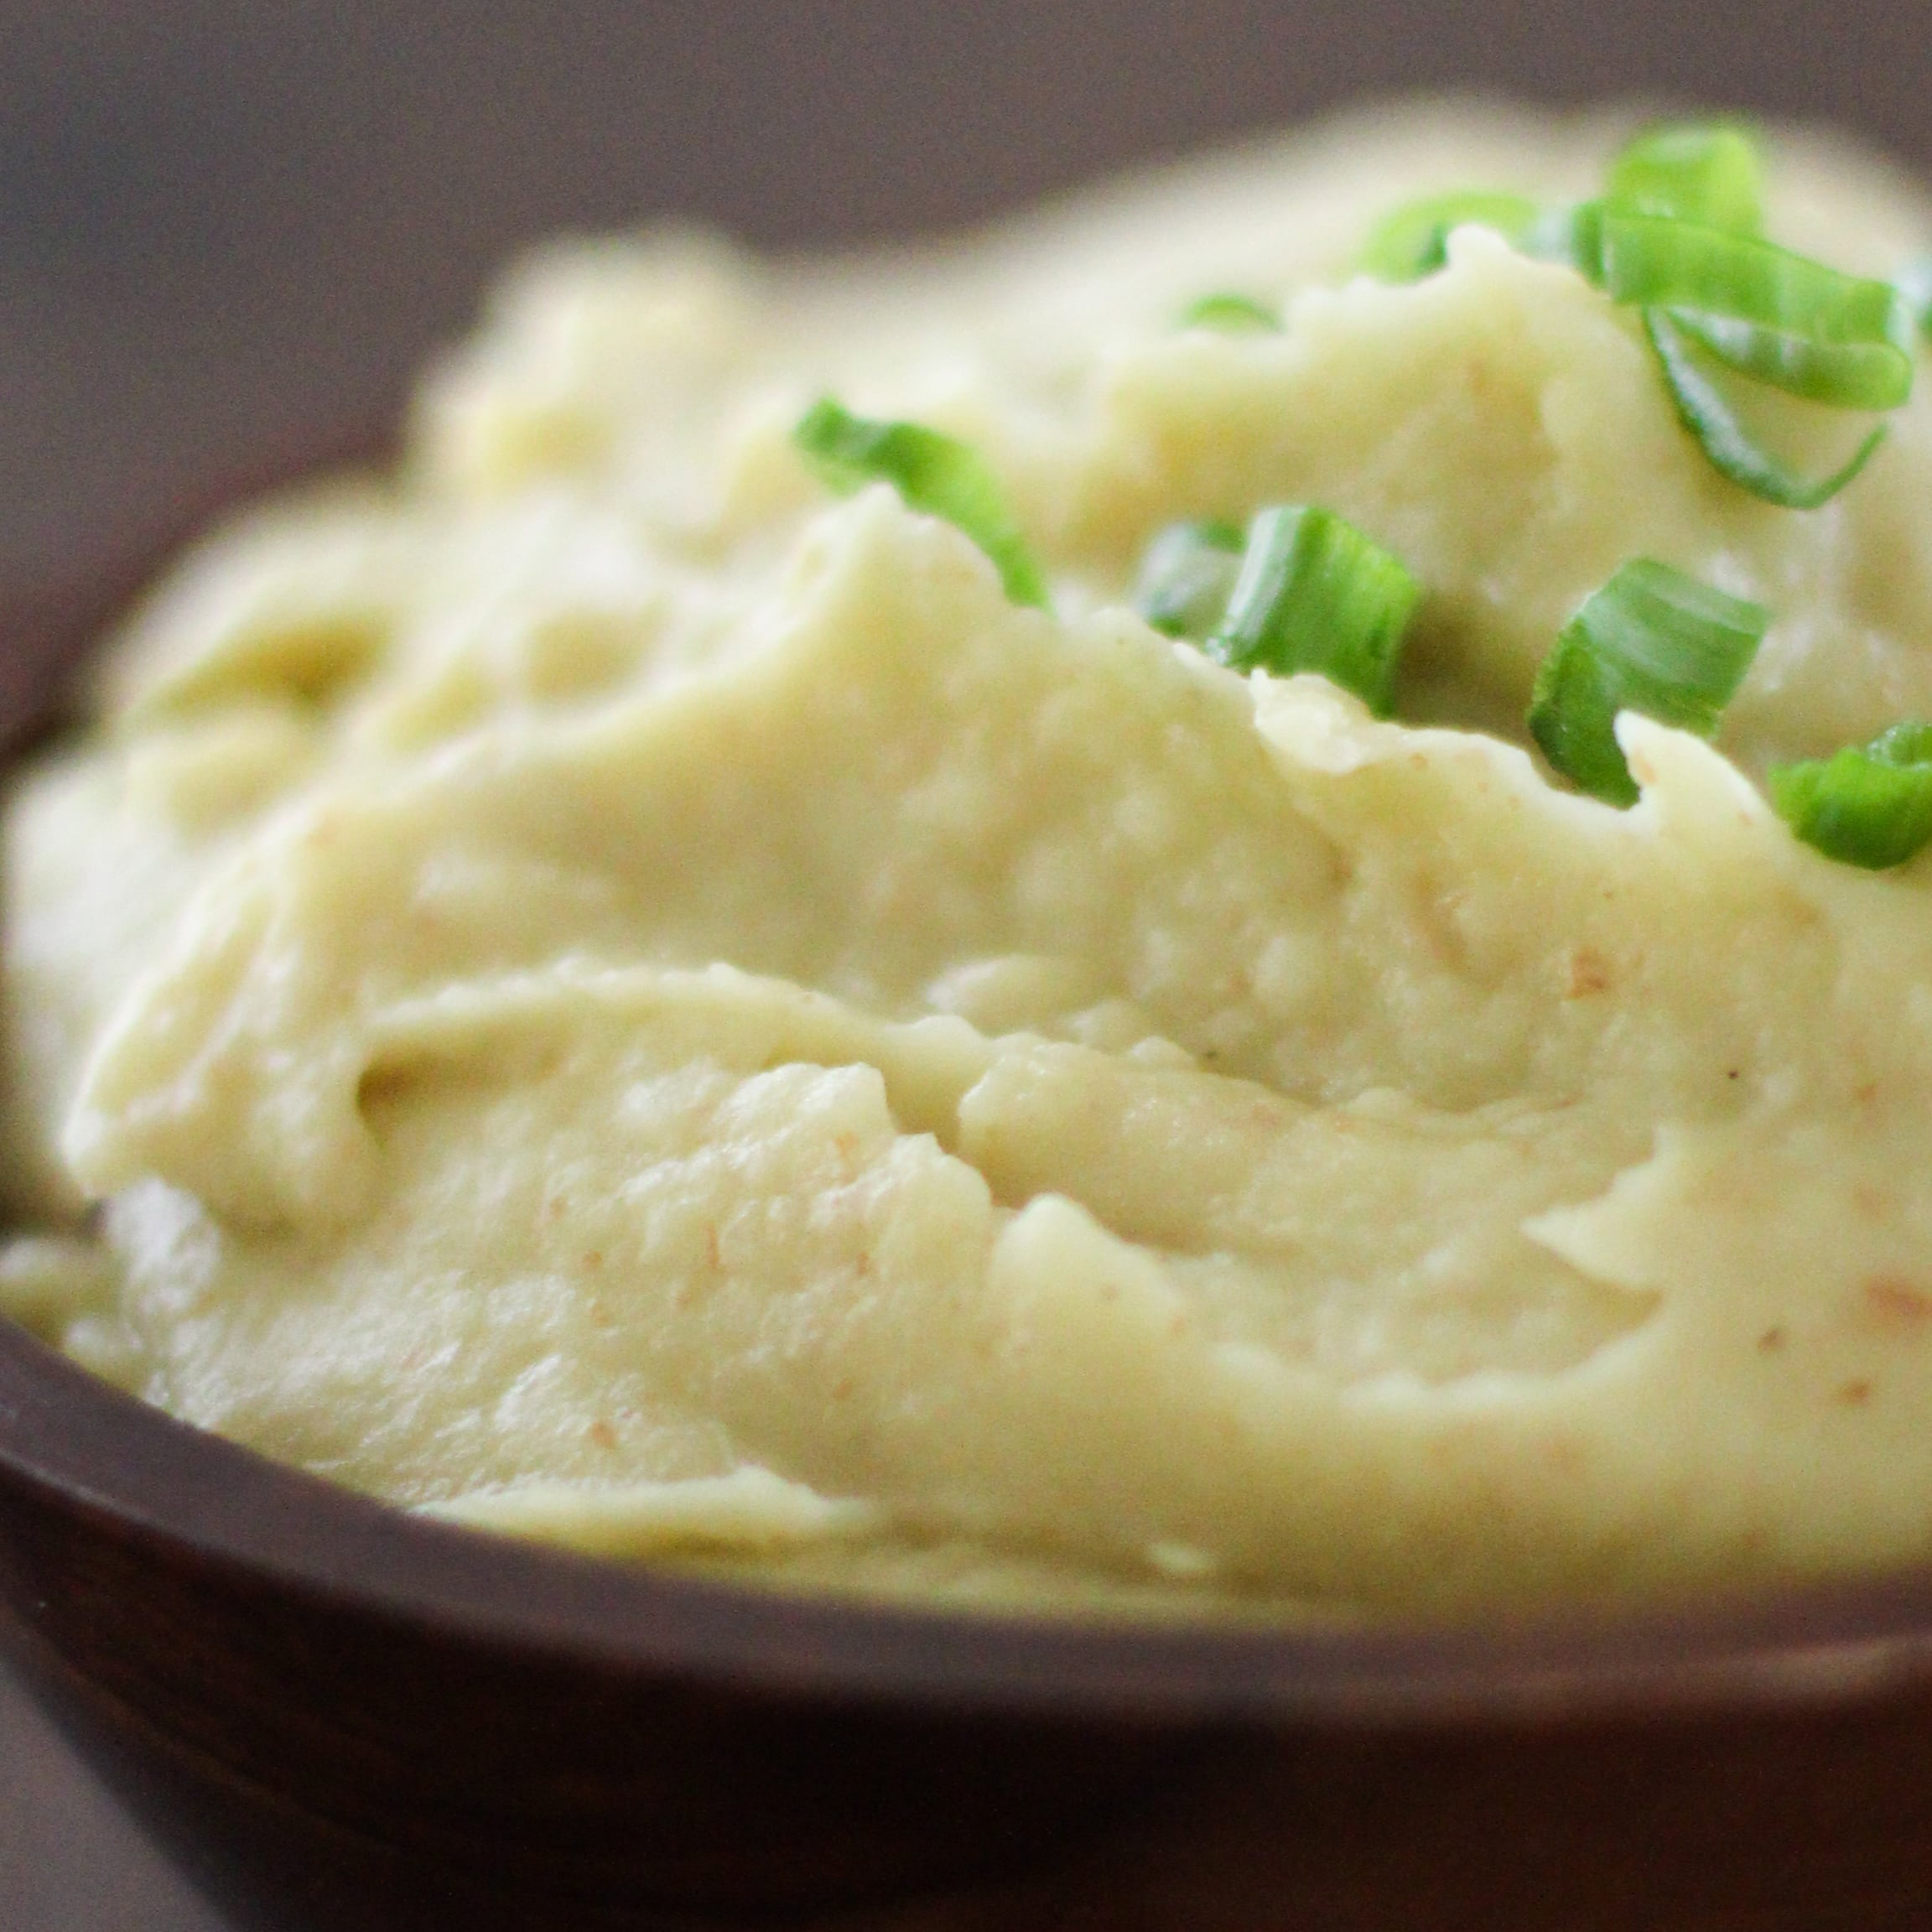 Recipes mashed potatoes buttermilk